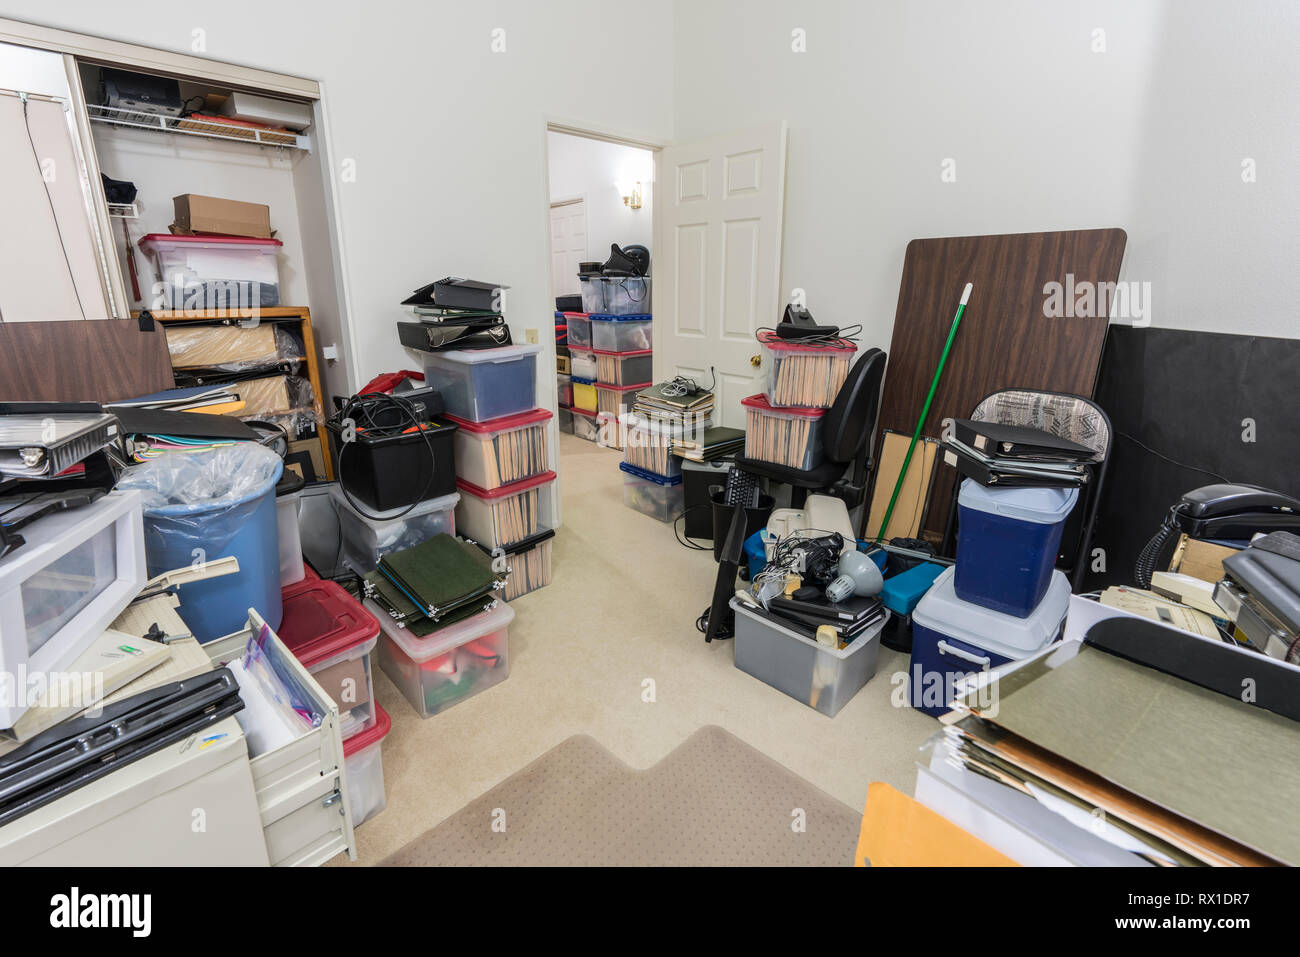 Messy back office with boxes, clutter old equipment and miscellaneous storage. - Stock Image